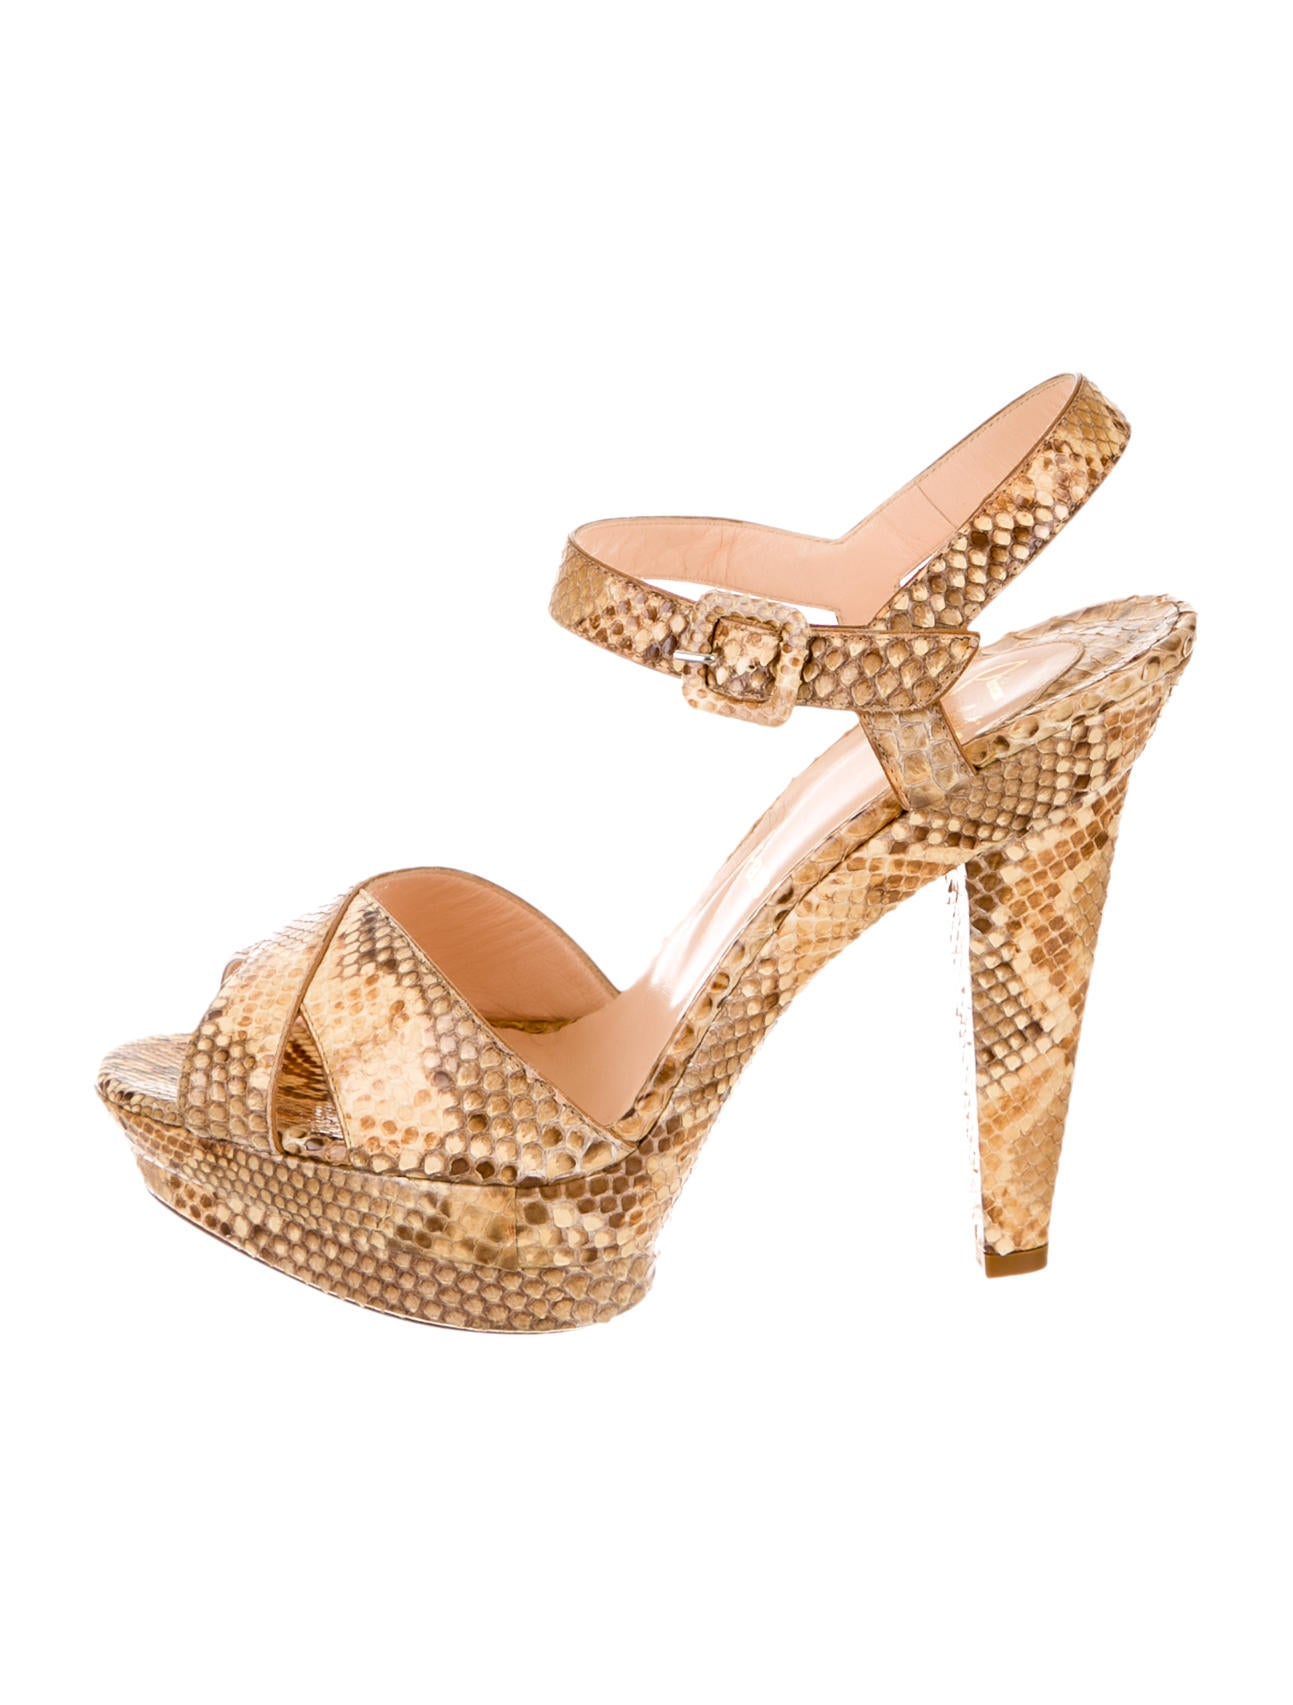 christian louboutin imitations - christian louboutin python sandals Beige and brown layered ...